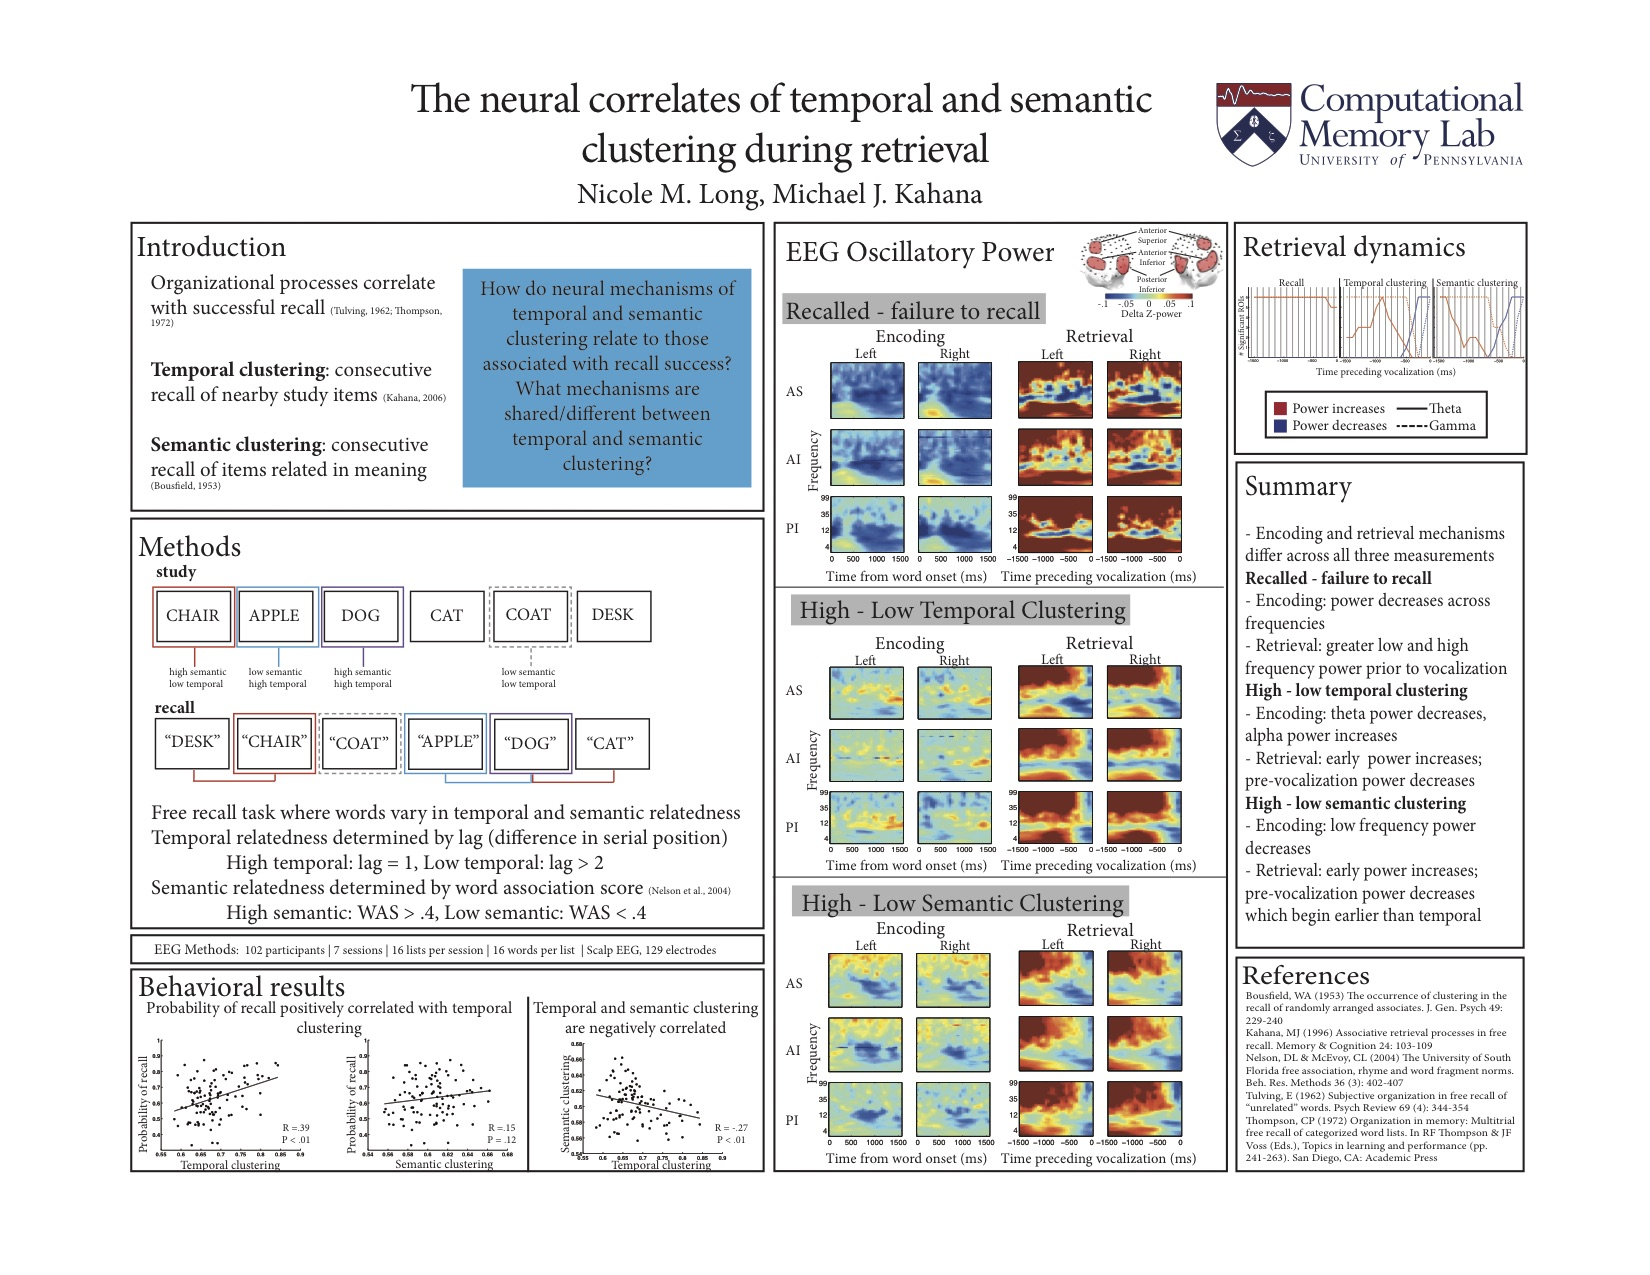 The neural correlates of temporal and semantic clustering during retrieval